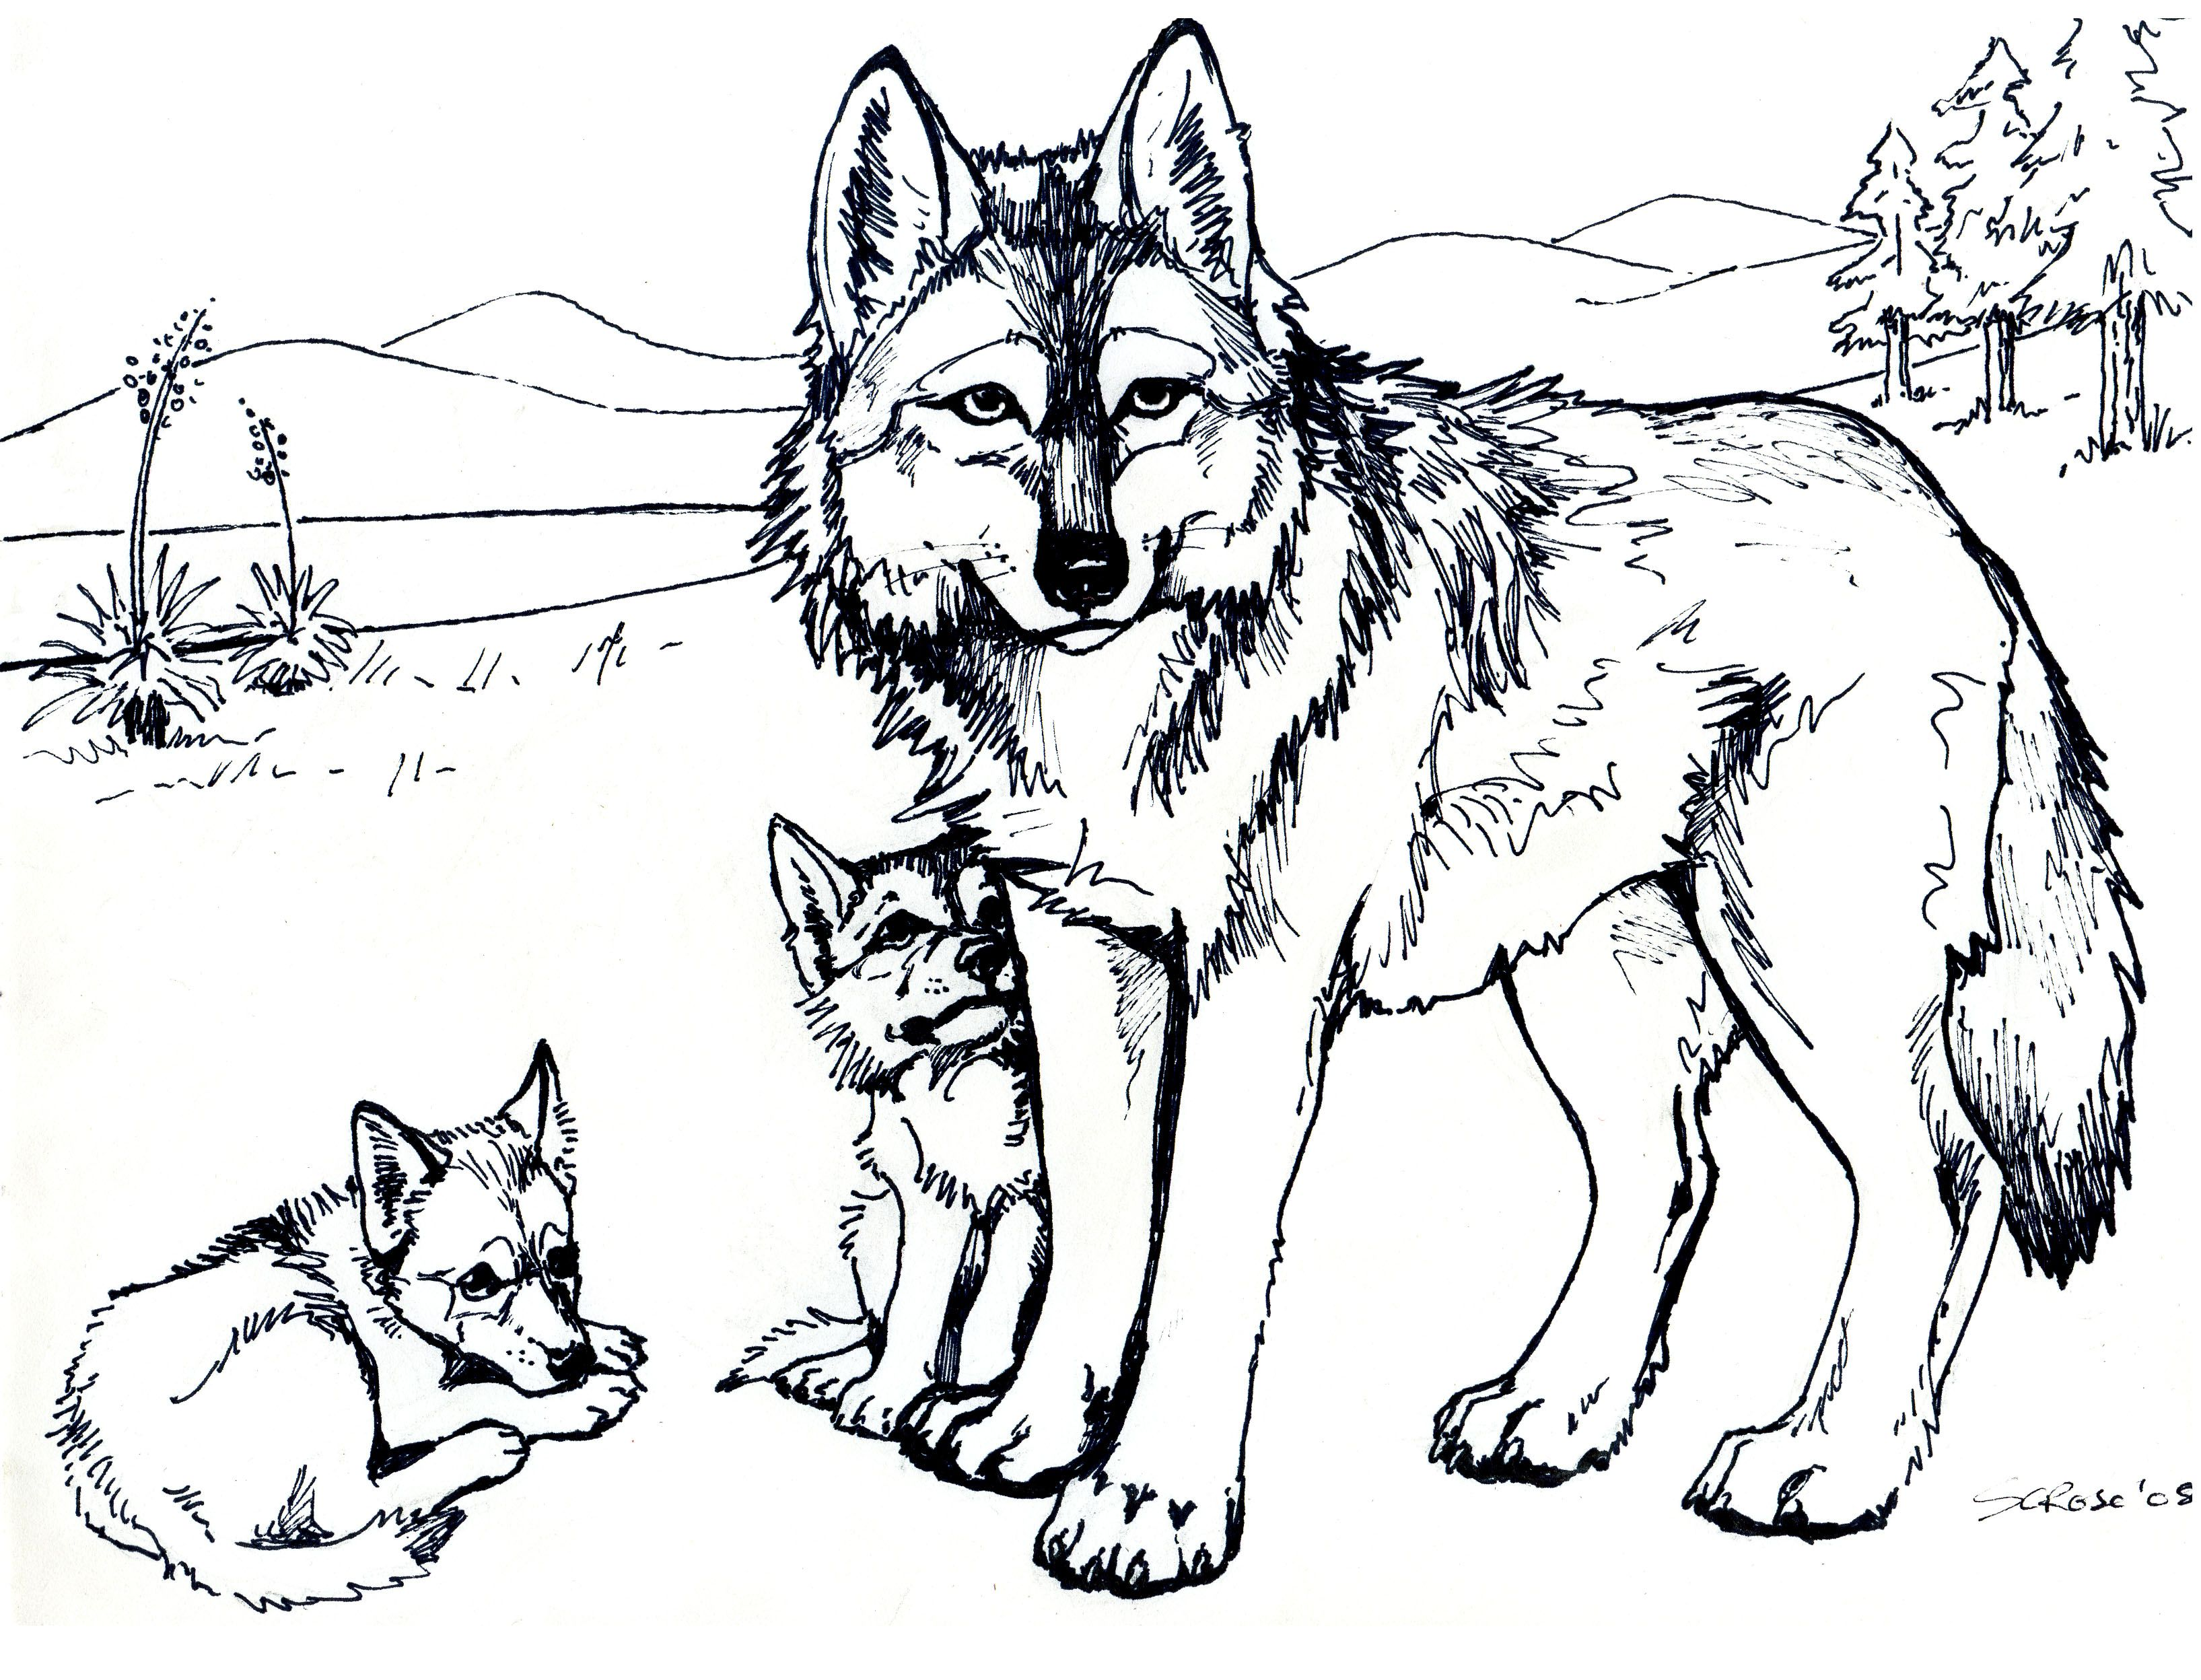 Free coloring pages adults printable - Download And Print Printable Free Wolf Coloring Pages For Adults